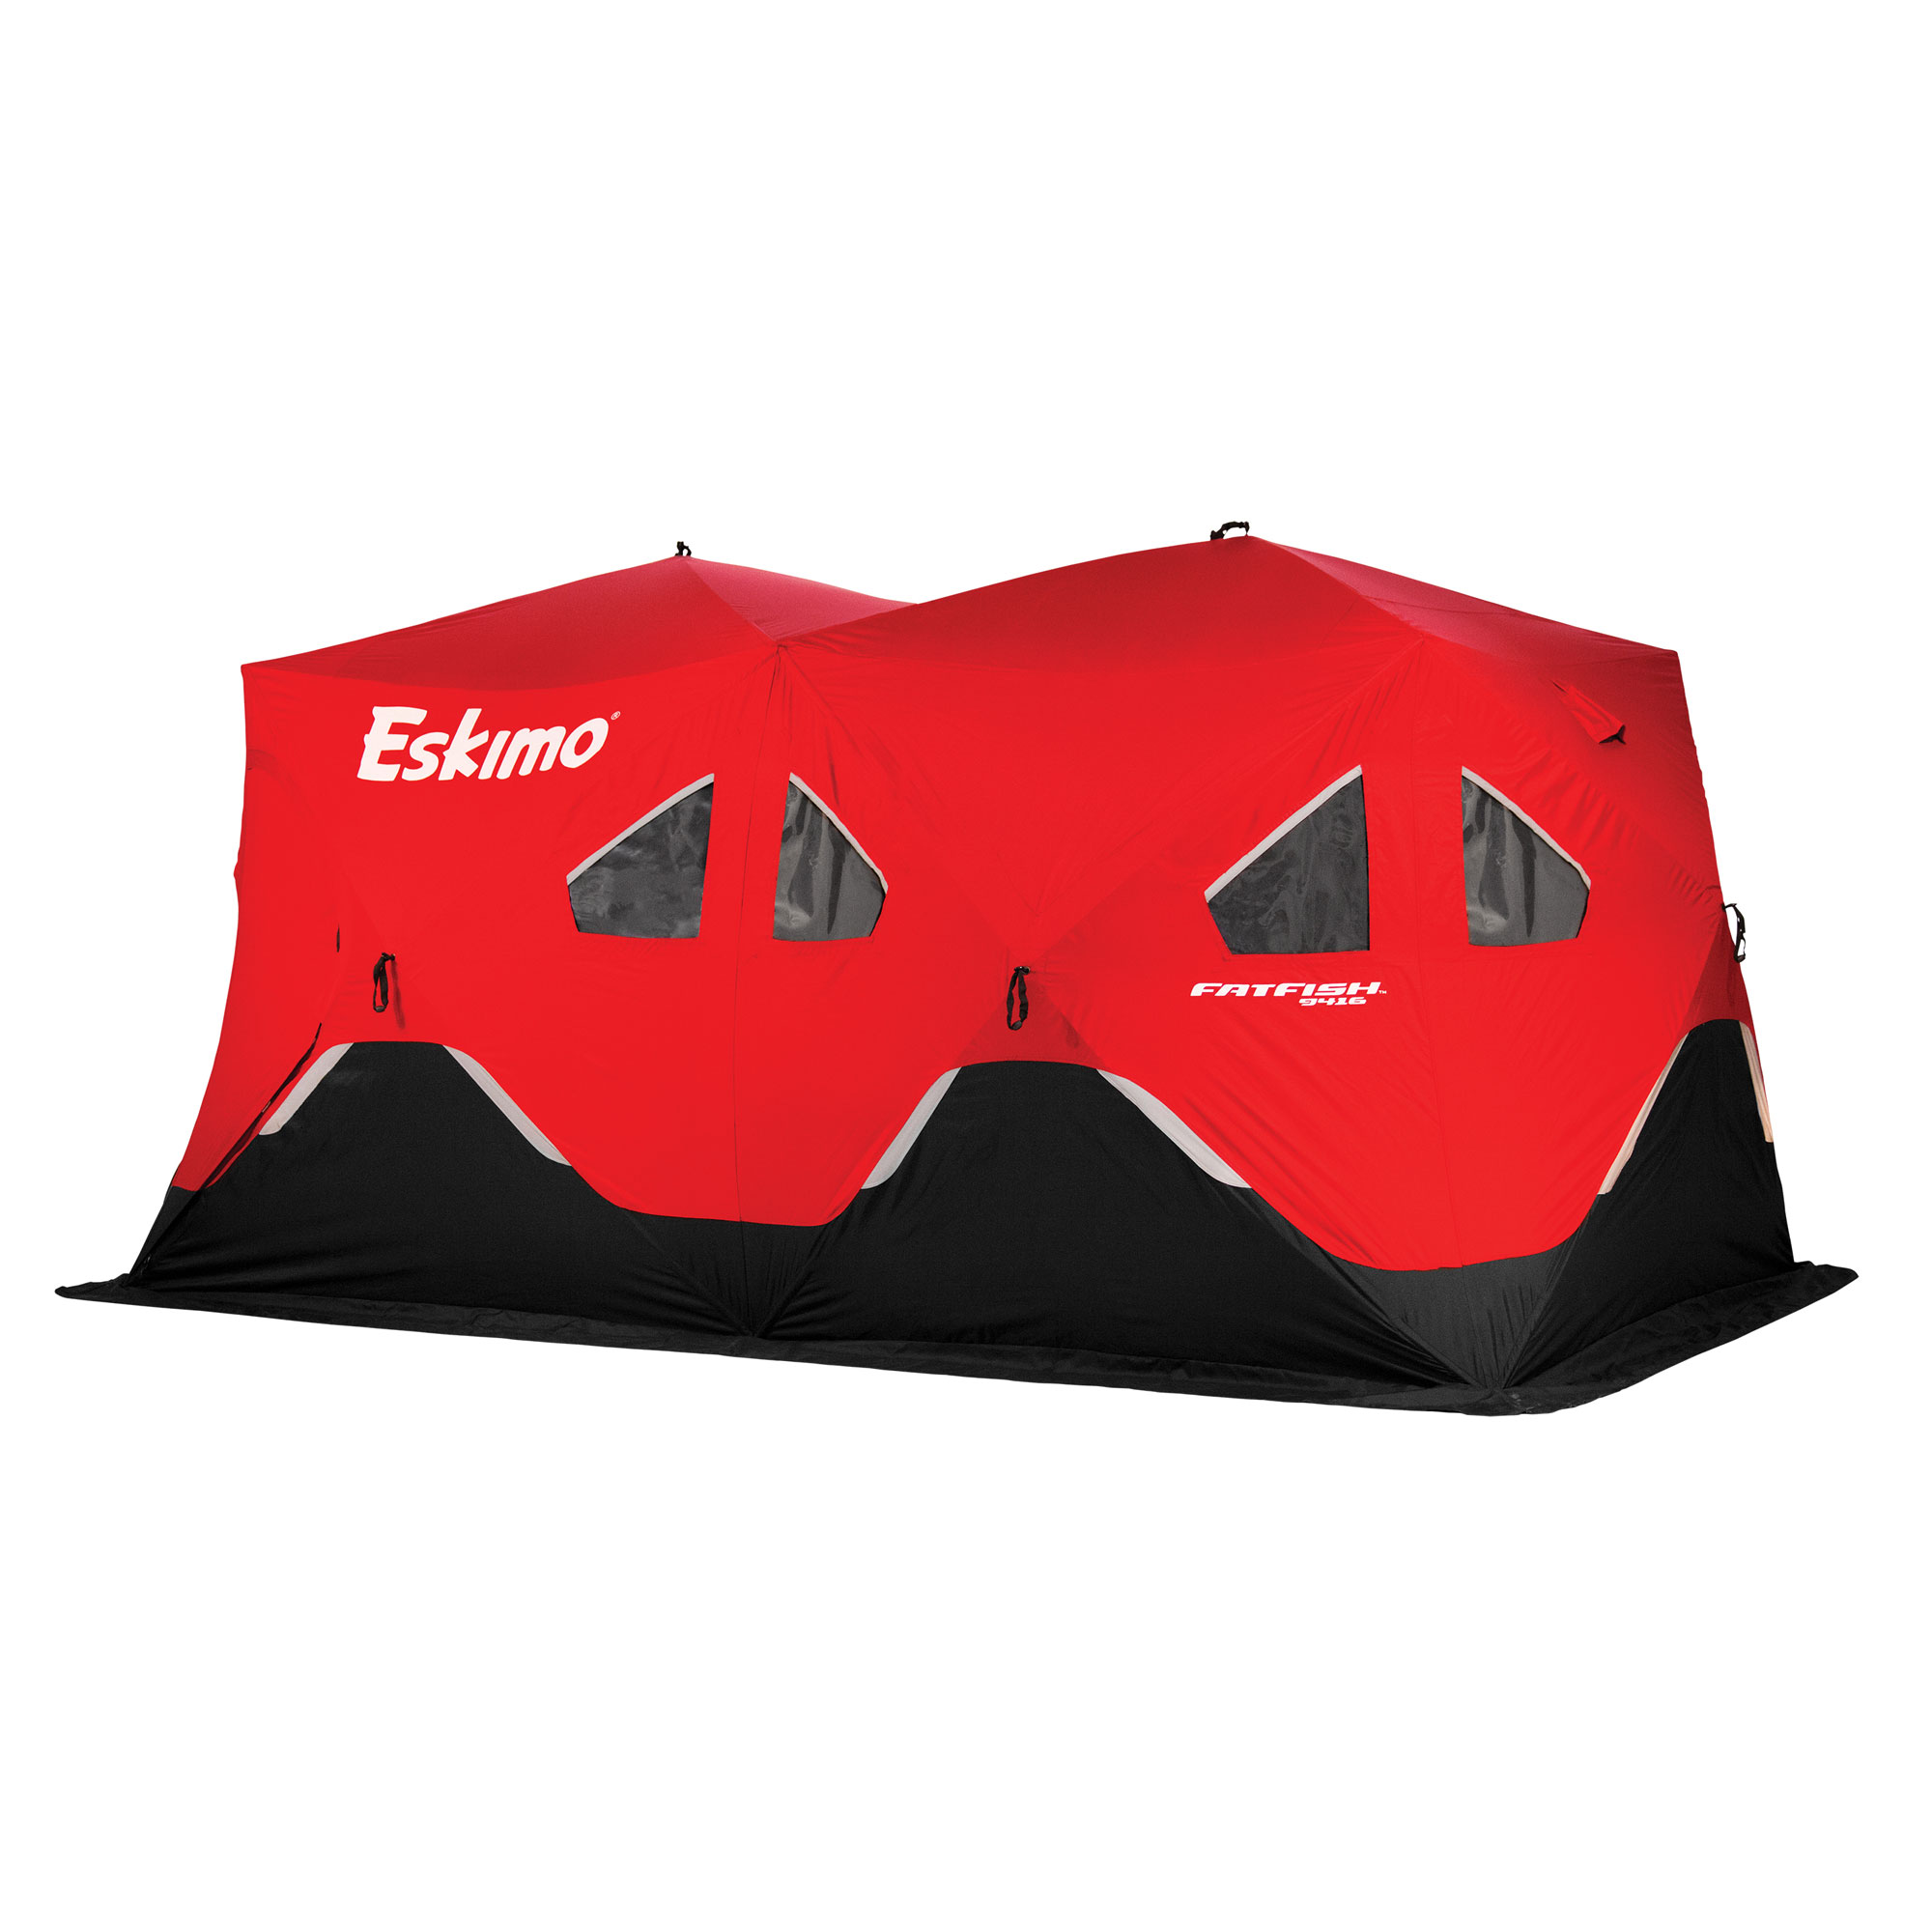 Eskimo FF9416 FatFish Pop-up Portable Ice Shelter, 7-9 Person by Ice Shantys